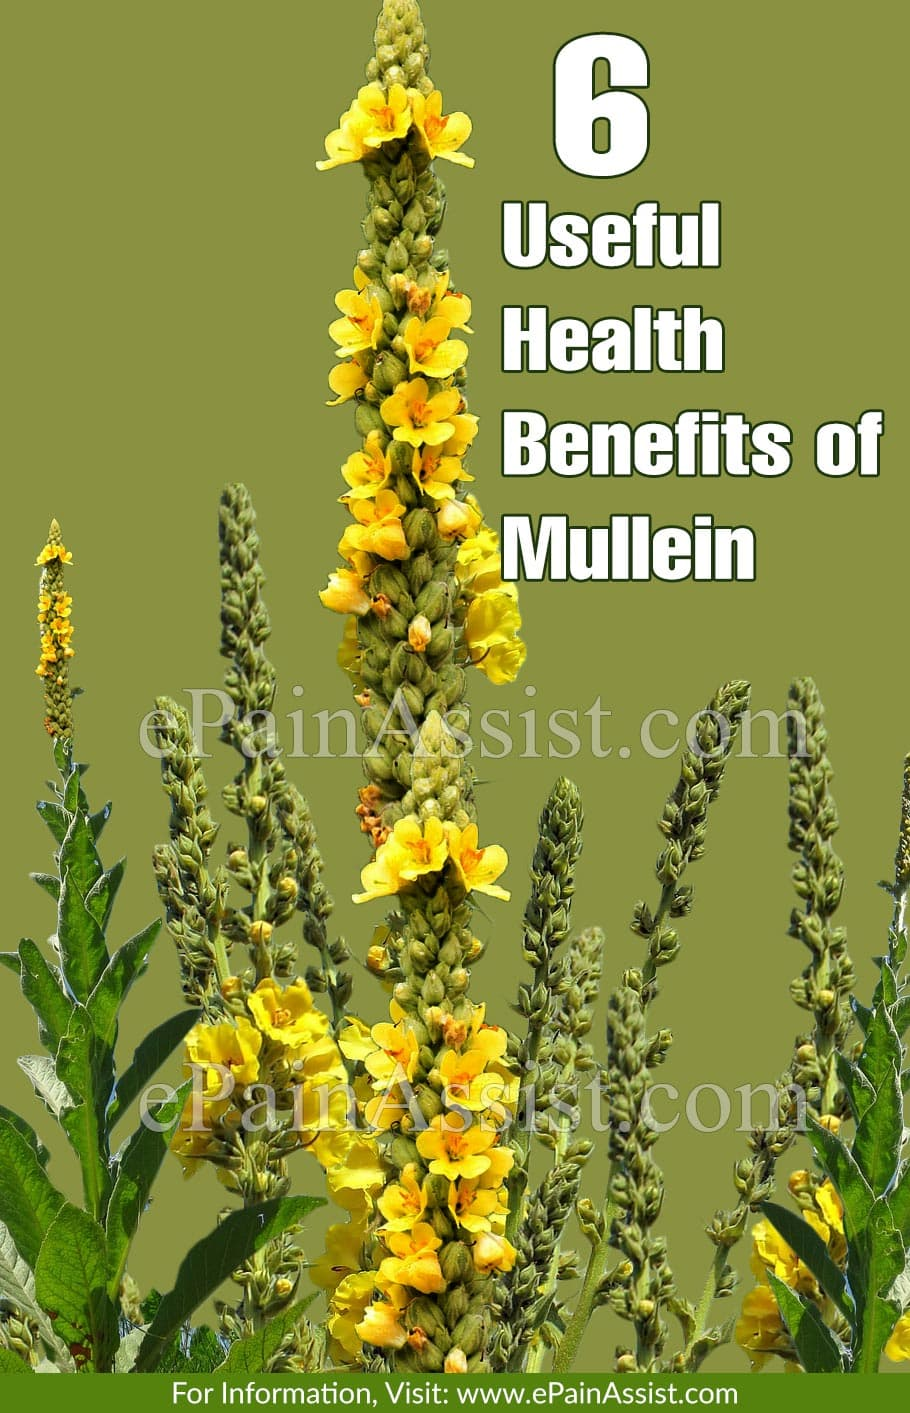 6 Useful Health Benefits of Mullein